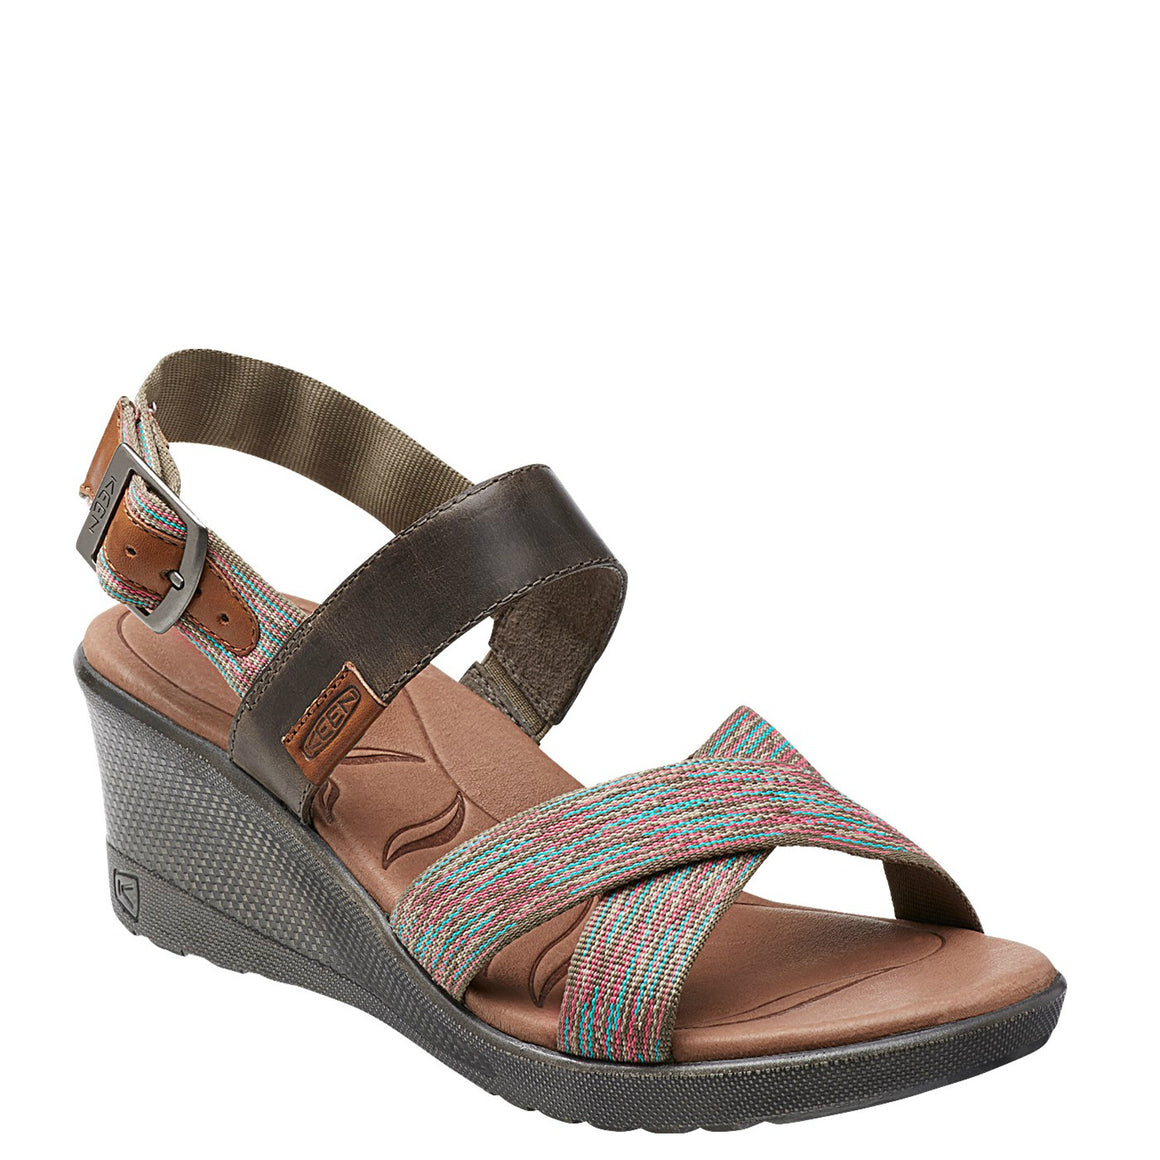 Keen Women's Skyline Wedge - Brindle 1014313